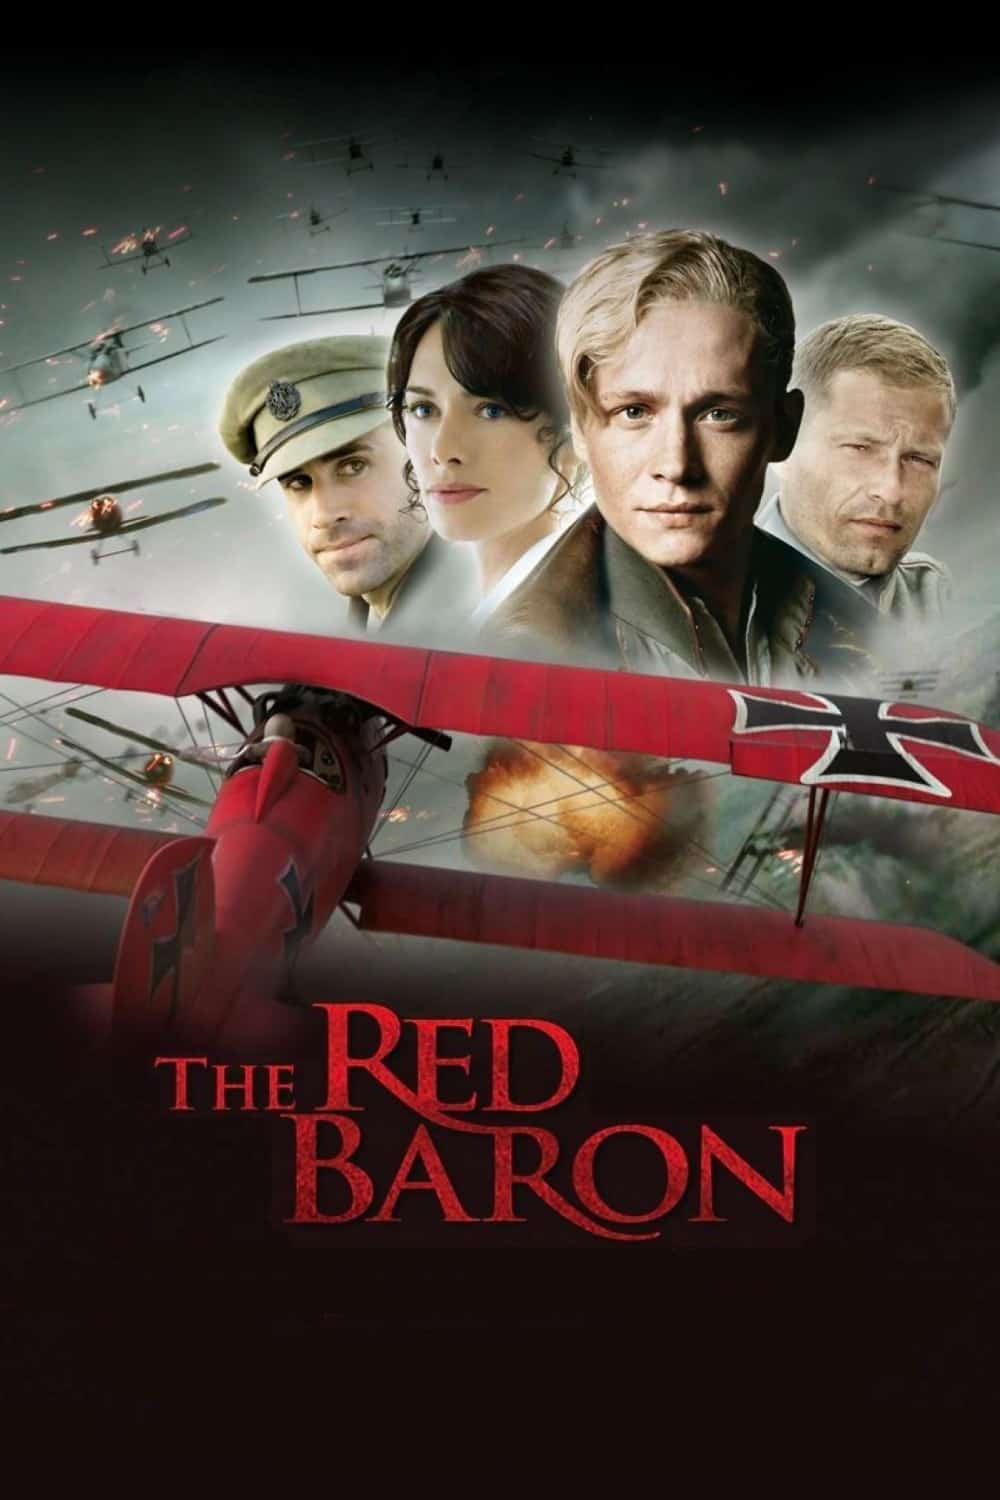 The Red Baron, 2008